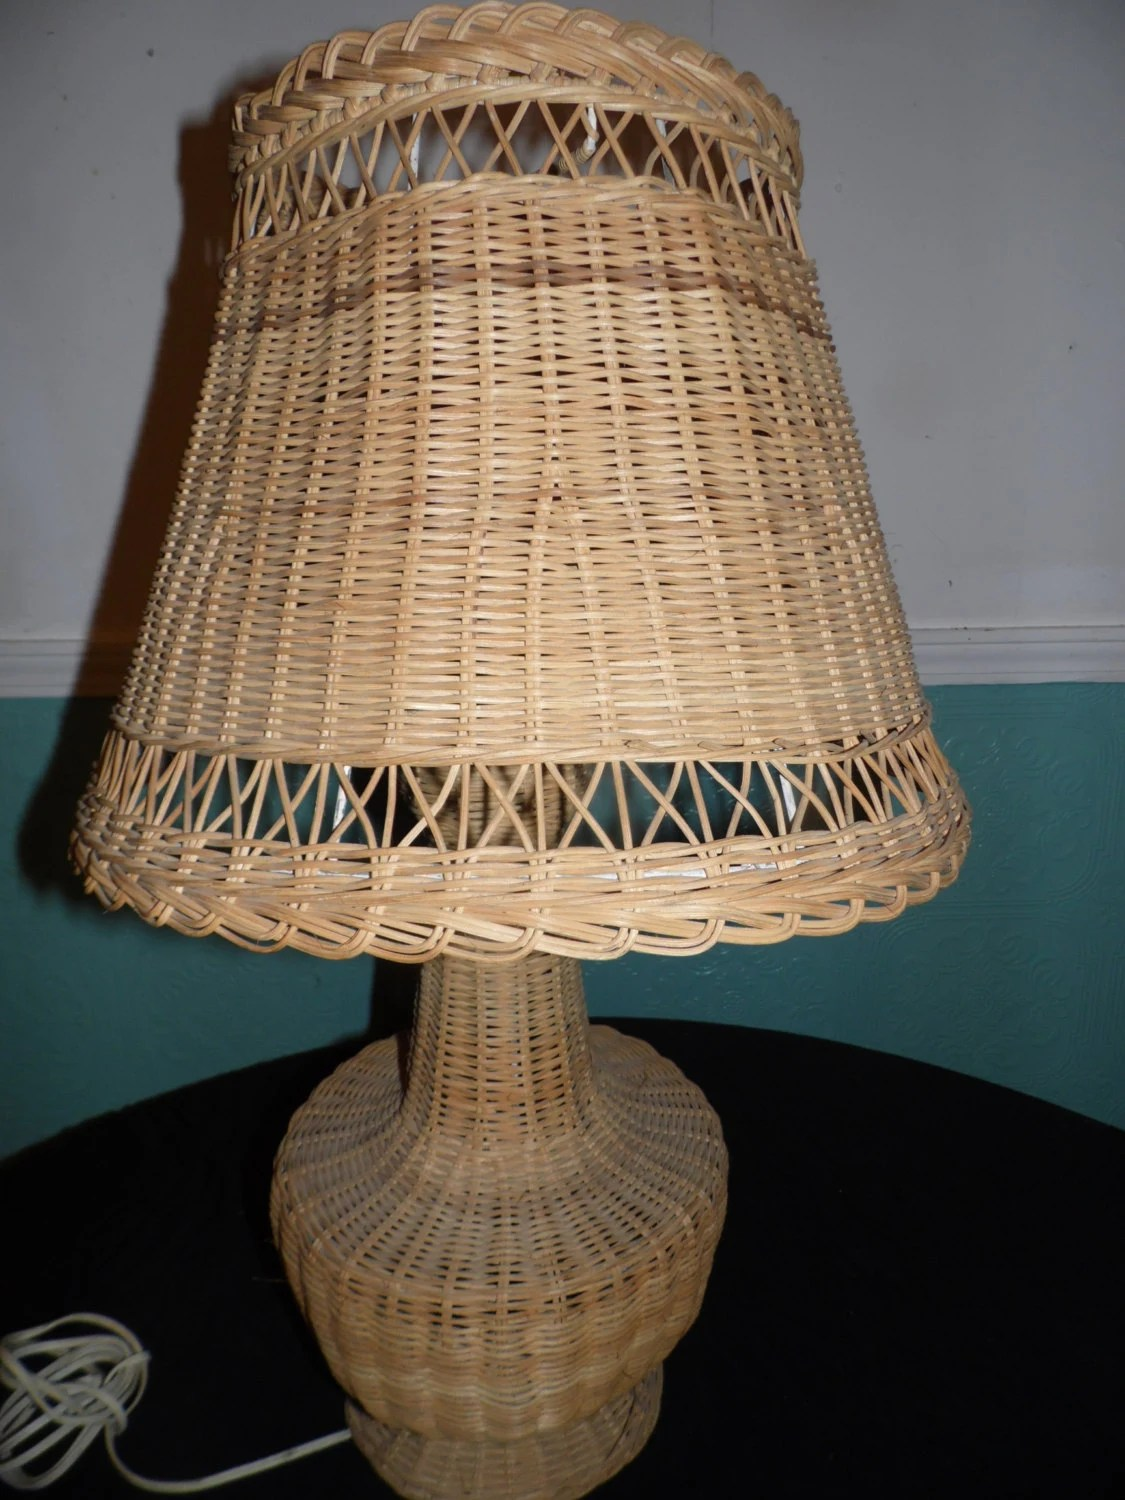 Vintage Wicker Rattan Woven Jute Table Lamp Electric Lamp